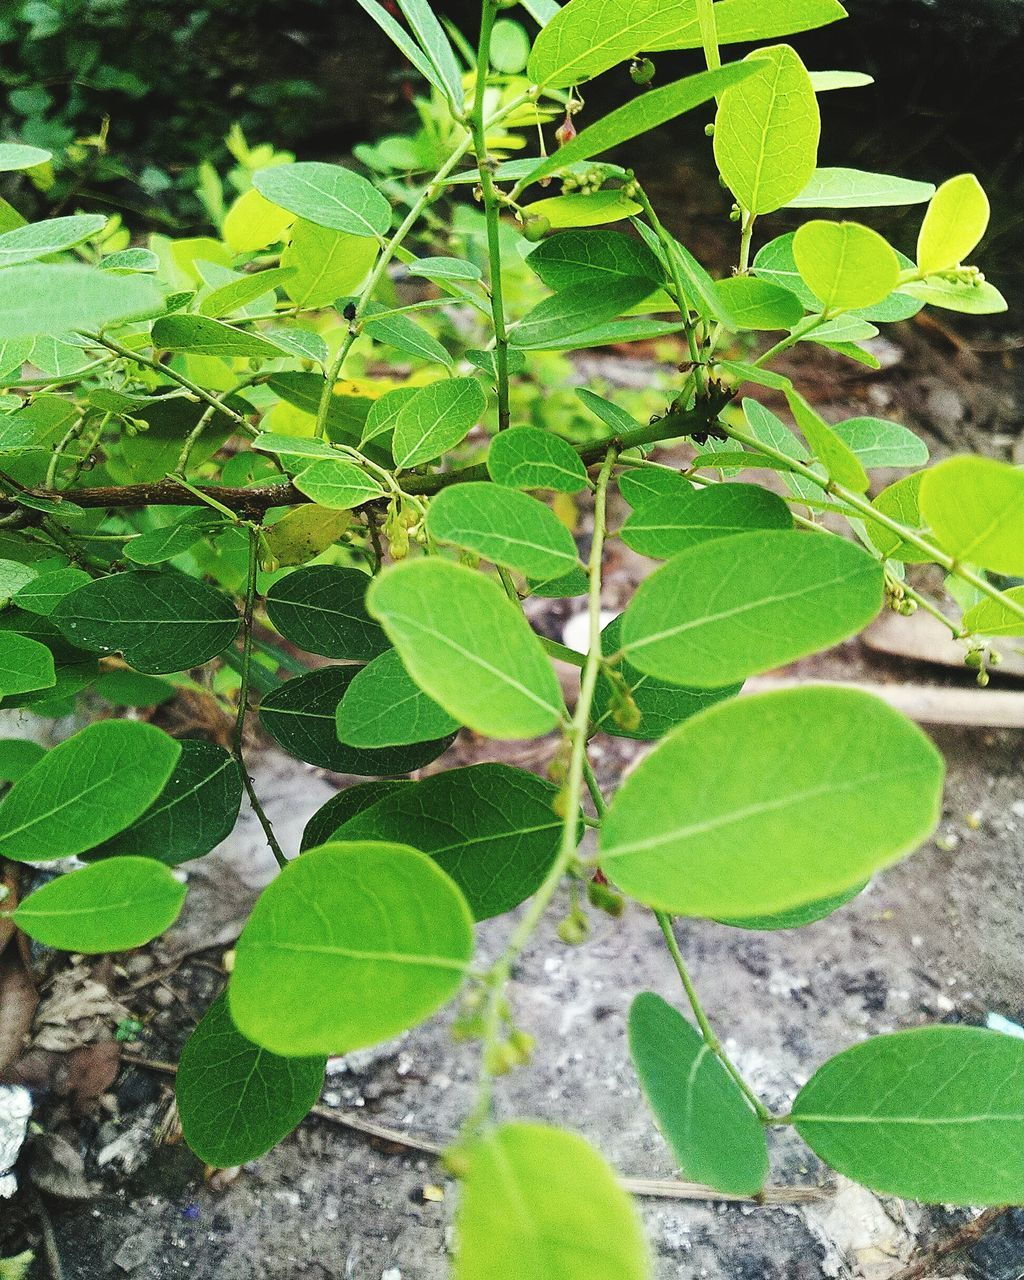 leaf, plant, green color, growth, nature, close-up, day, no people, outdoors, fragility, freshness, beauty in nature